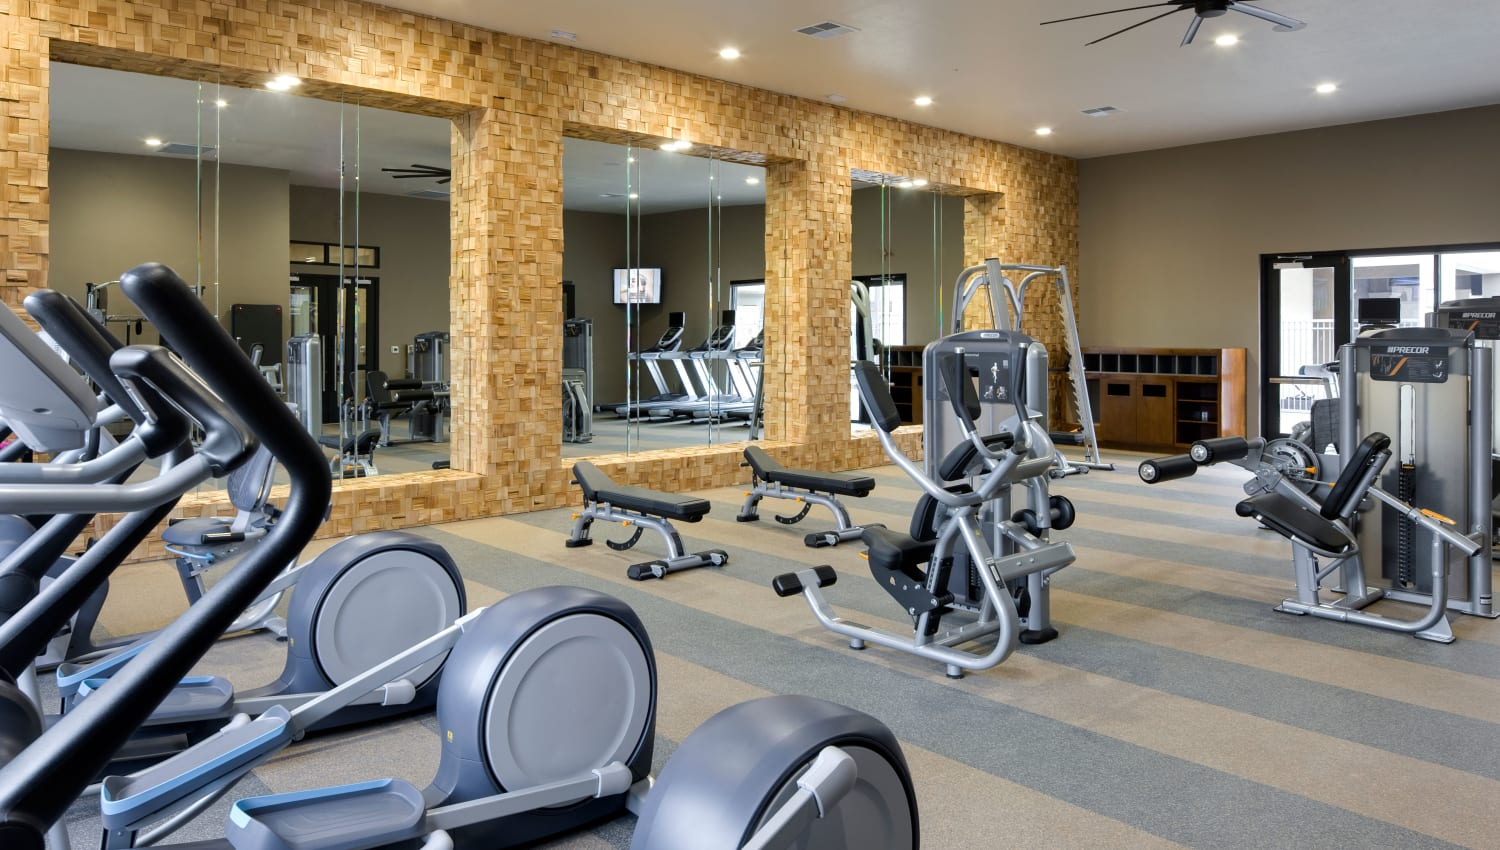 Fitness center at Olympus Alameda in Albuquerque, New Mexico